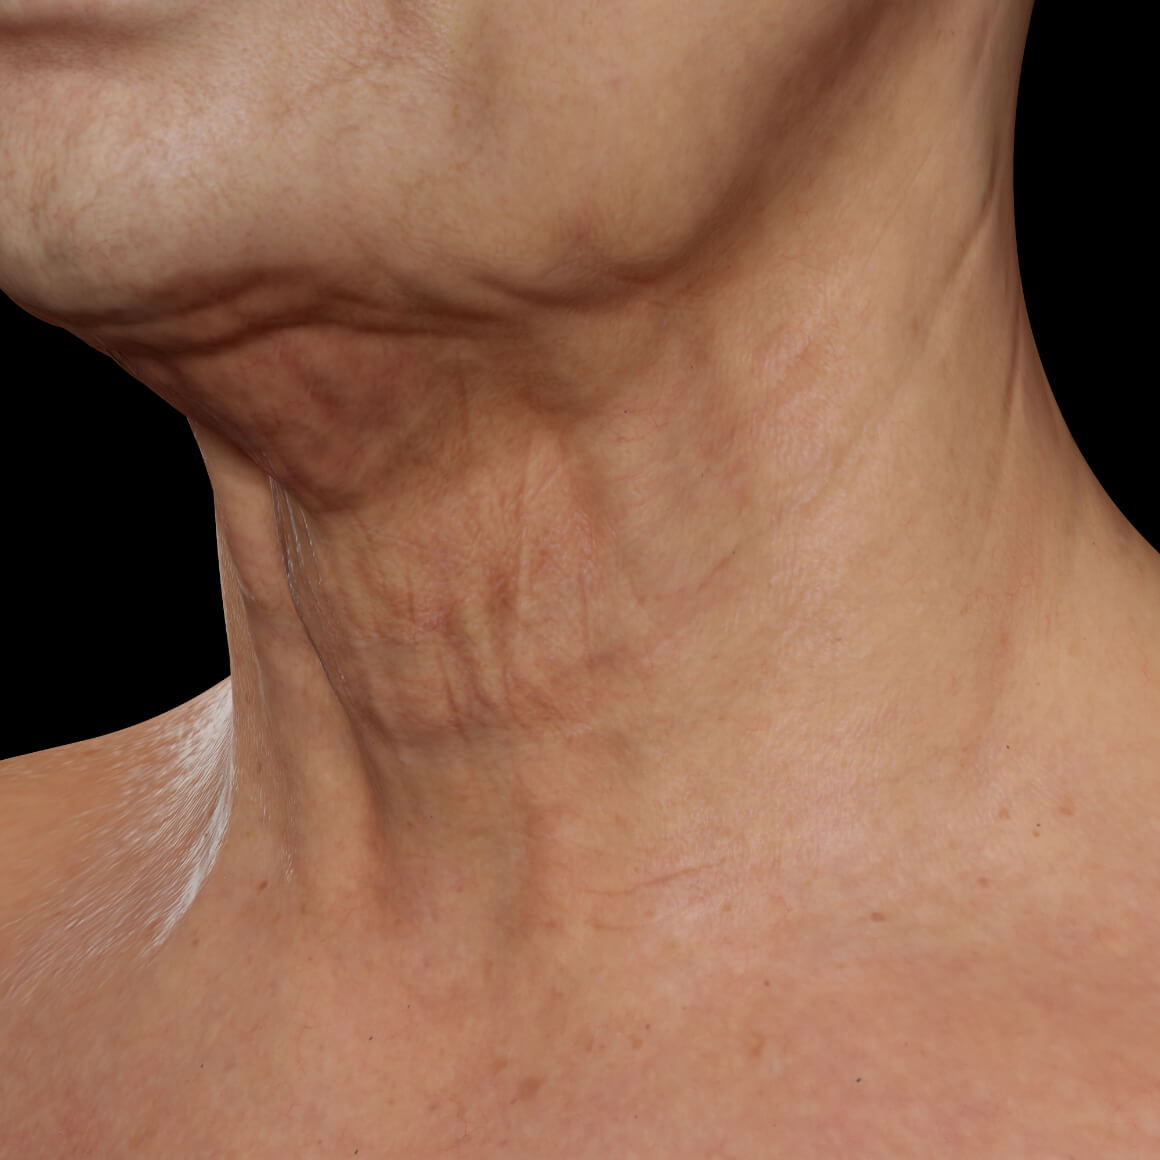 Clinique Chloé female patient positioned at an angle showing laxity in the neck area